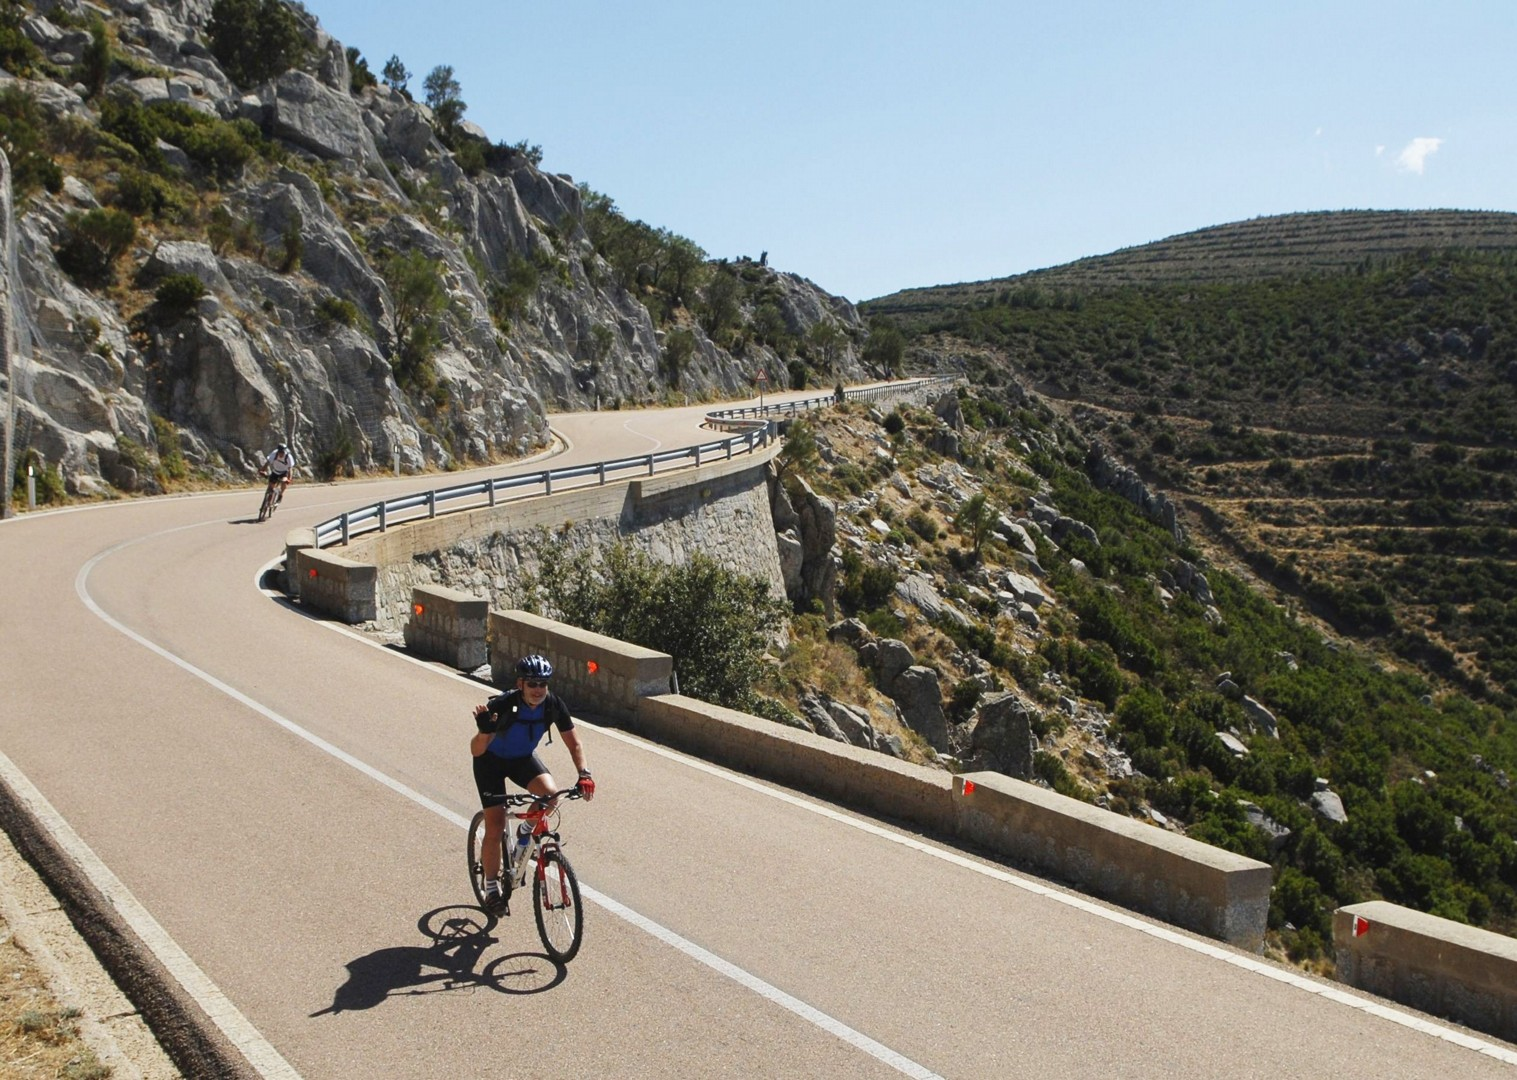 coast-to-coast-sardinia-self-guided-cycling.jpg - Italy - Sardinia - Coast to Coast - Self-Guided Leisure Cycling Holiday - Italia Leisure and Family Cycling